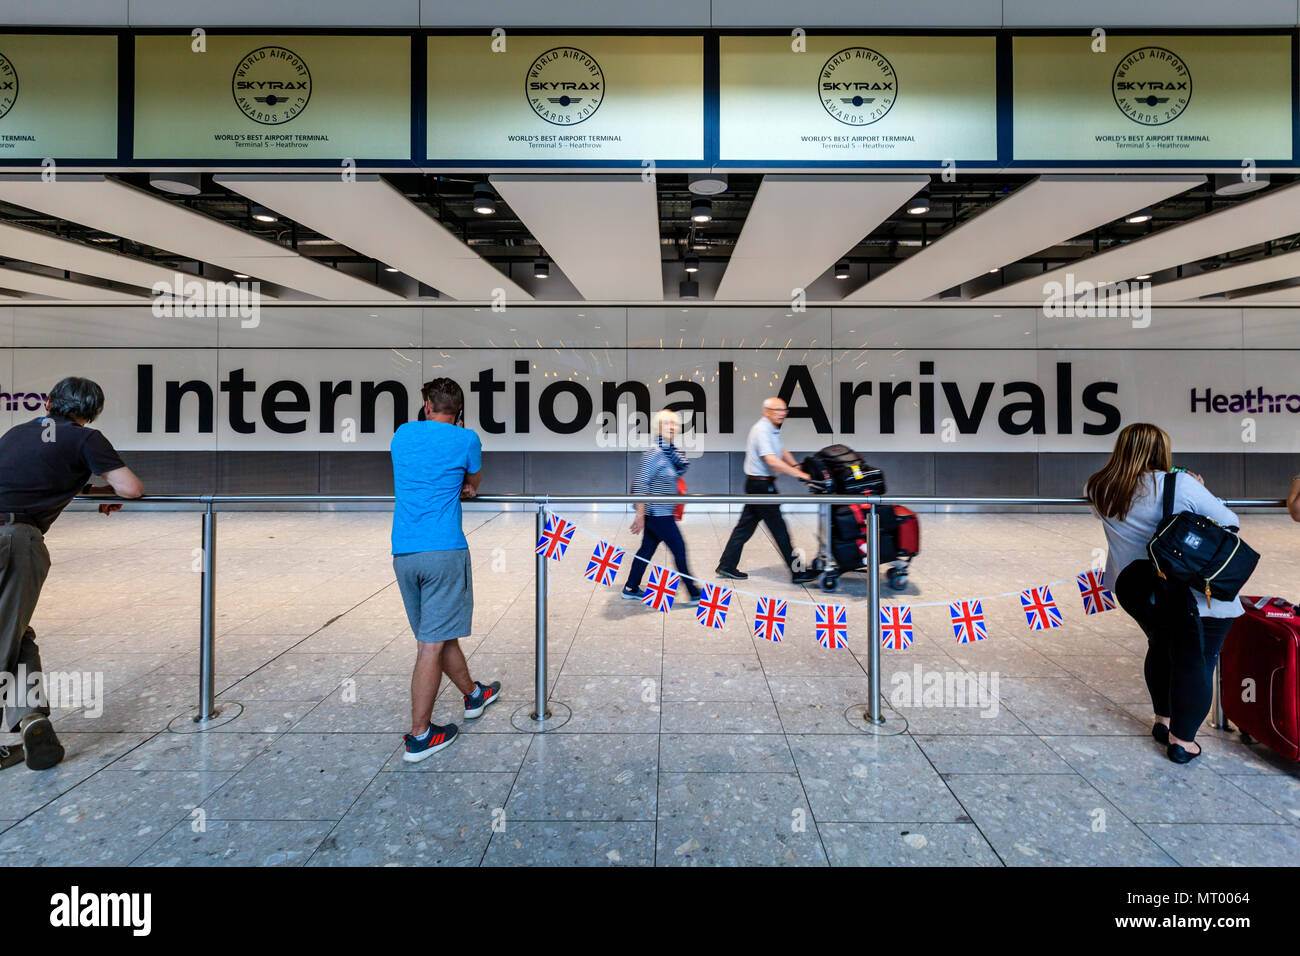 People Waiting At The Terminal 5 International Arrivals Hall, Heathrow Airport, London, UK - Stock Image